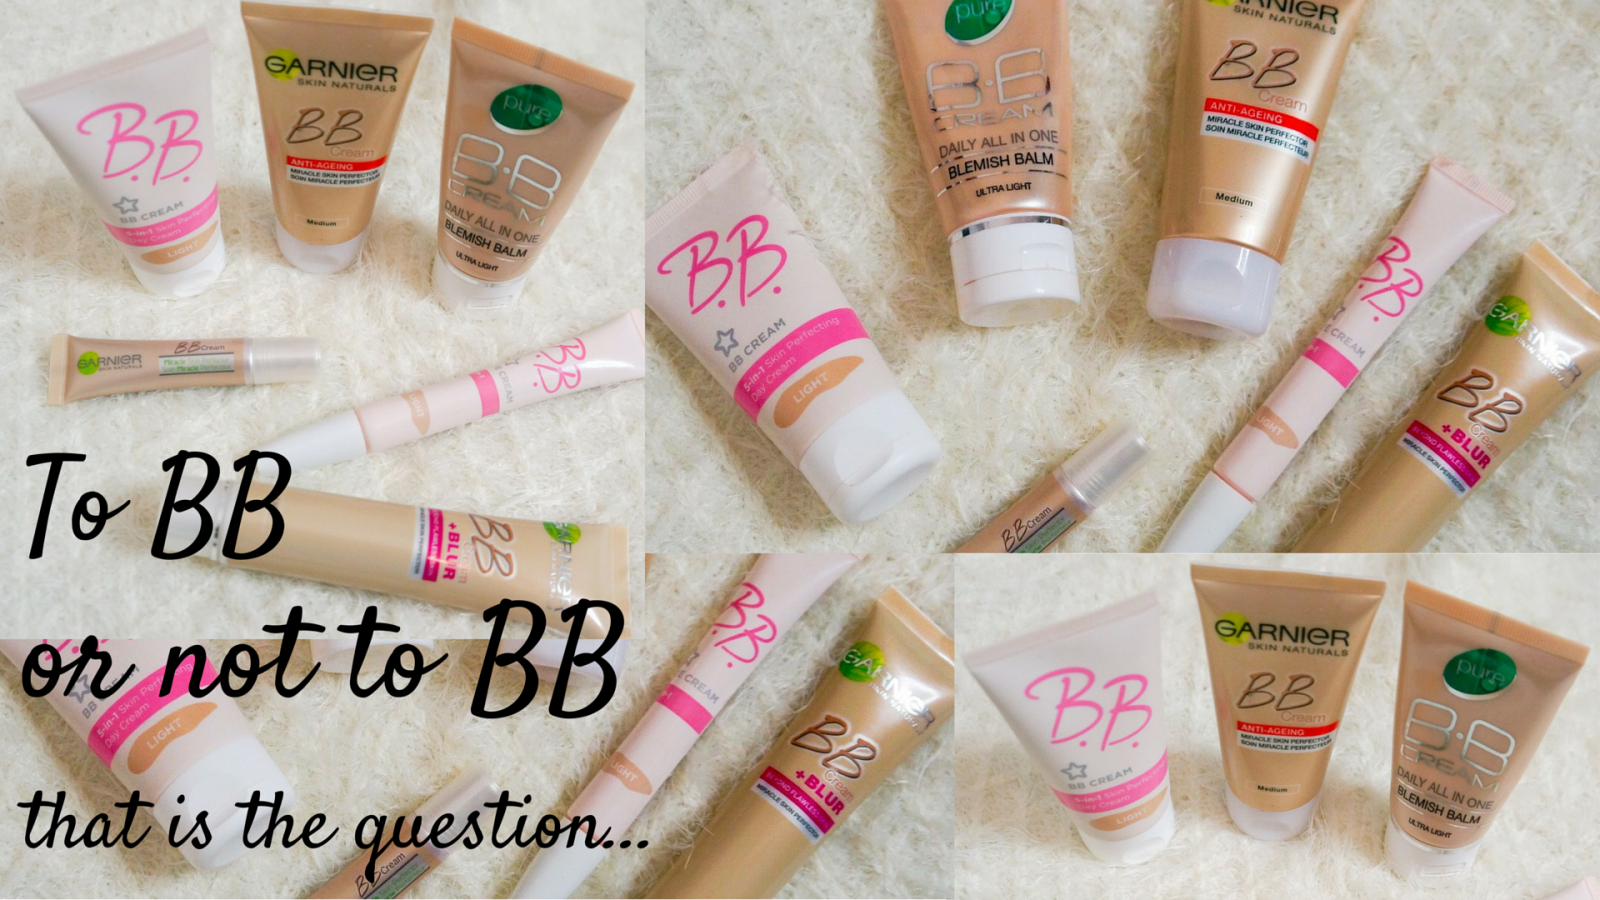 To BB or not to BB (cream)